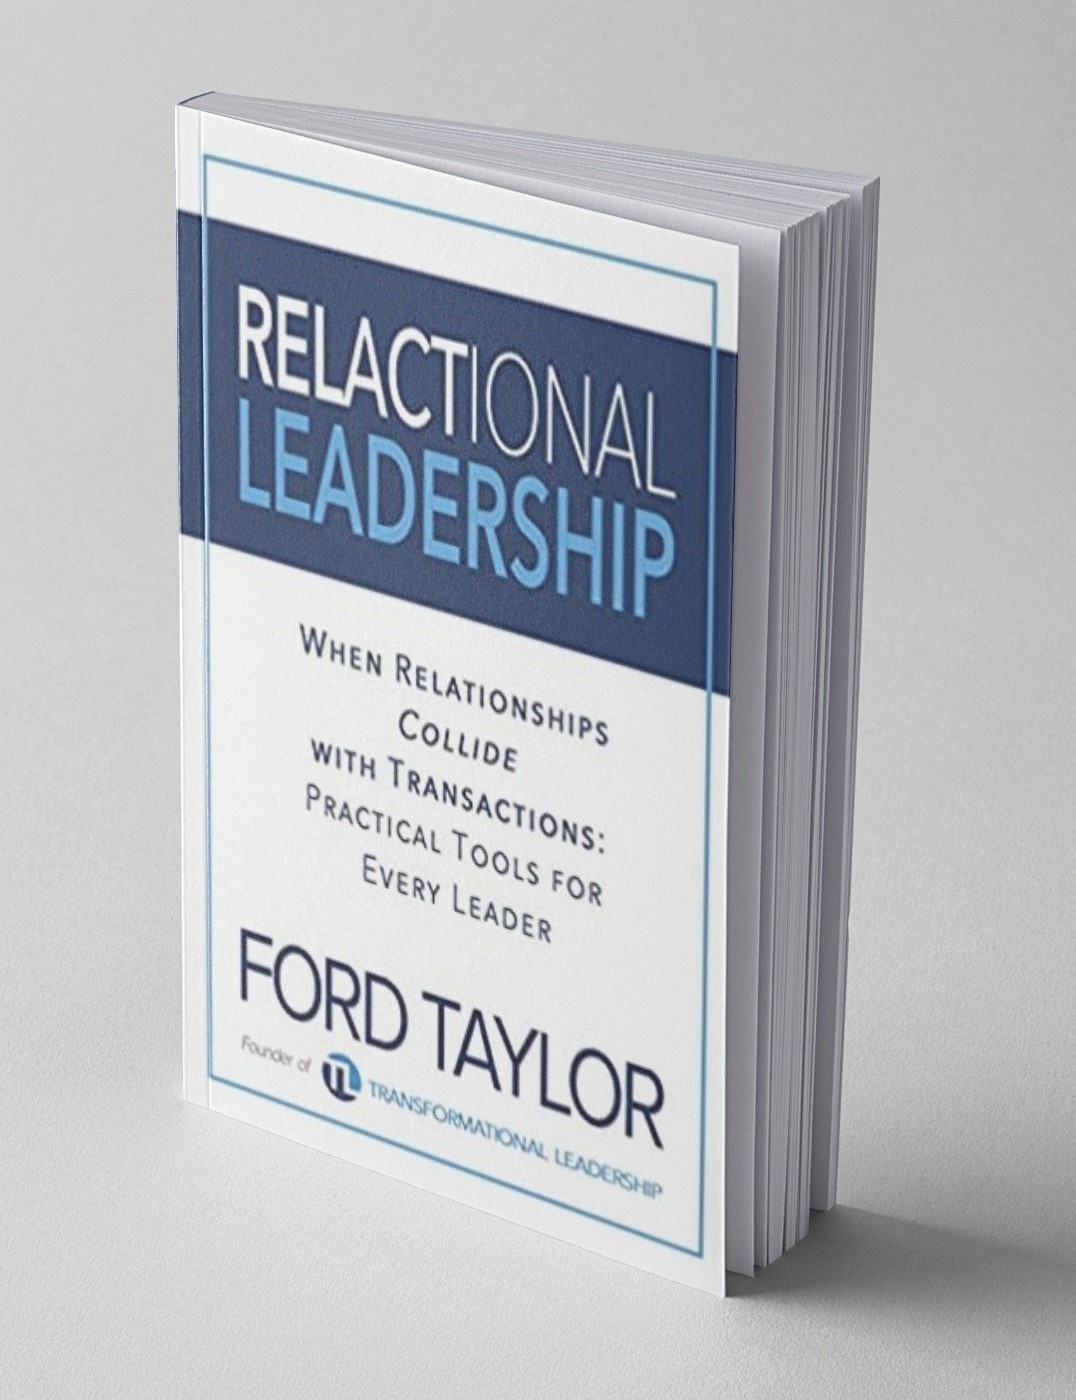 Relactional leadership book by Ford Taylor